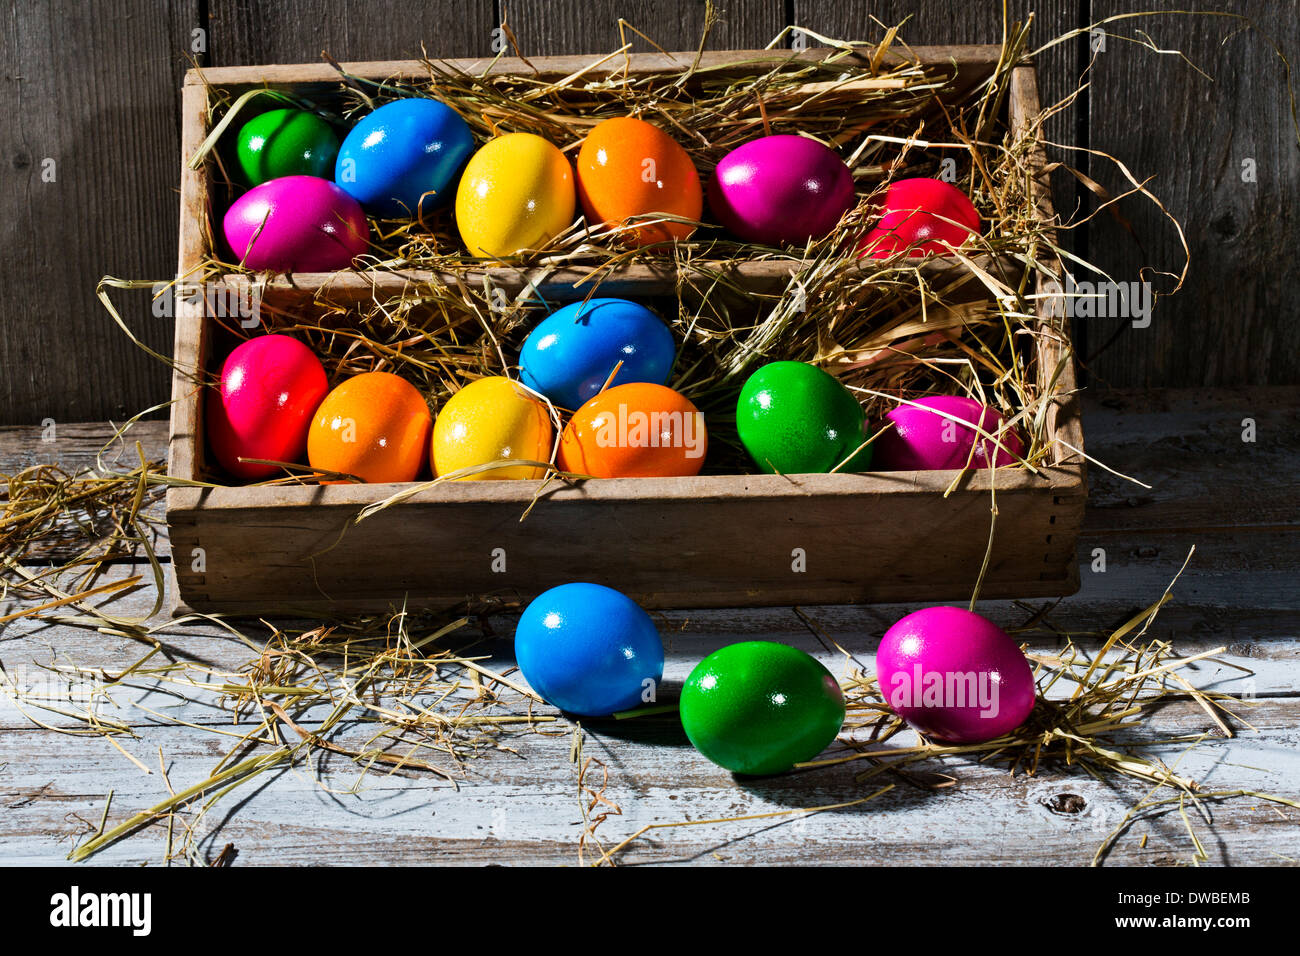 Wooden box of shiny coloured Easter eggs on wooden ground - Stock Image